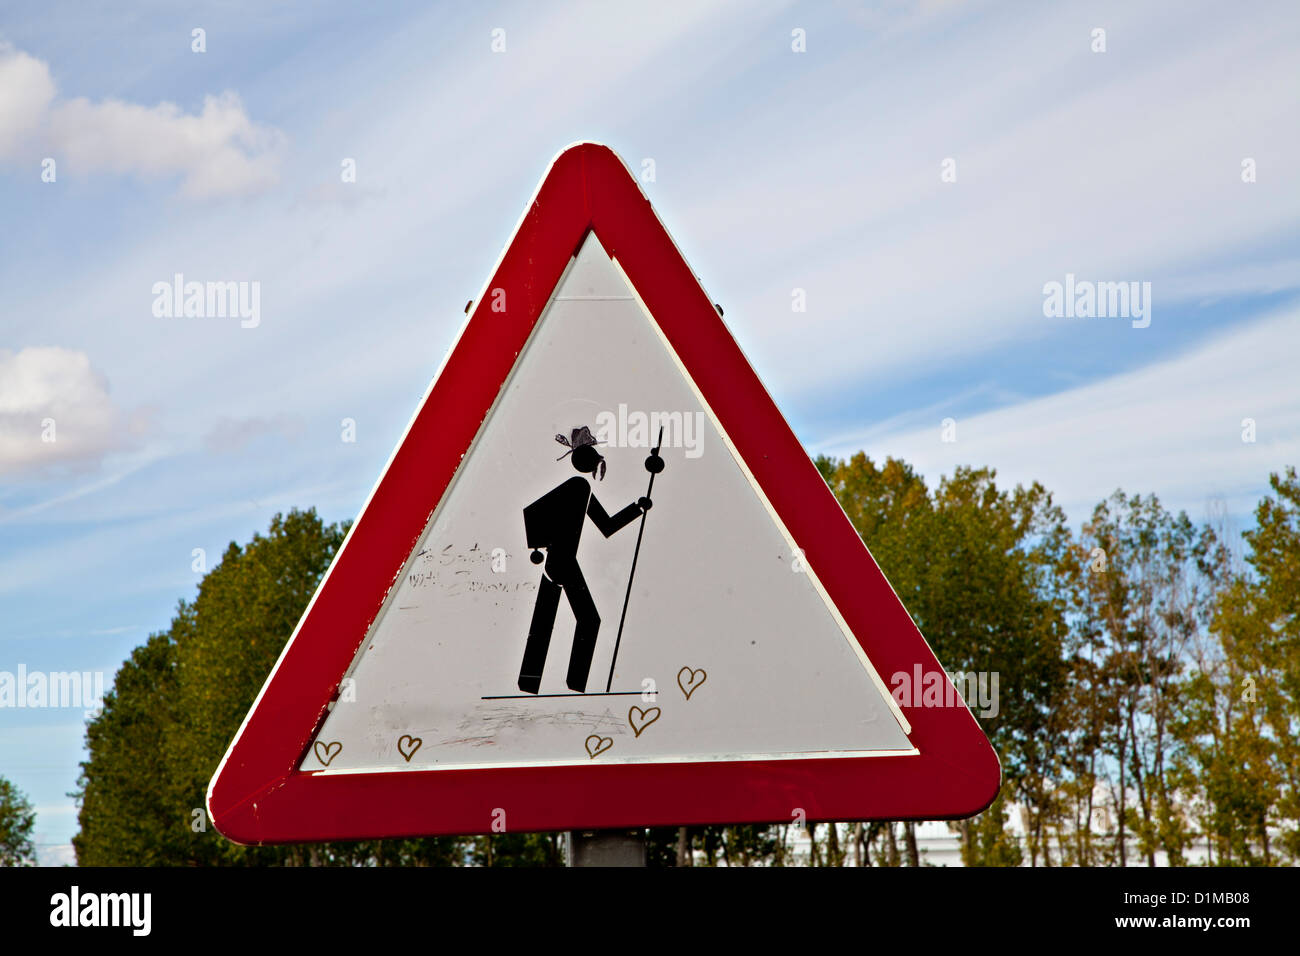 Pilgrim Yield Sign, that has been modified with graffiti, along the Camino to Santiago de Compostela Spain. Stylized - Stock Image